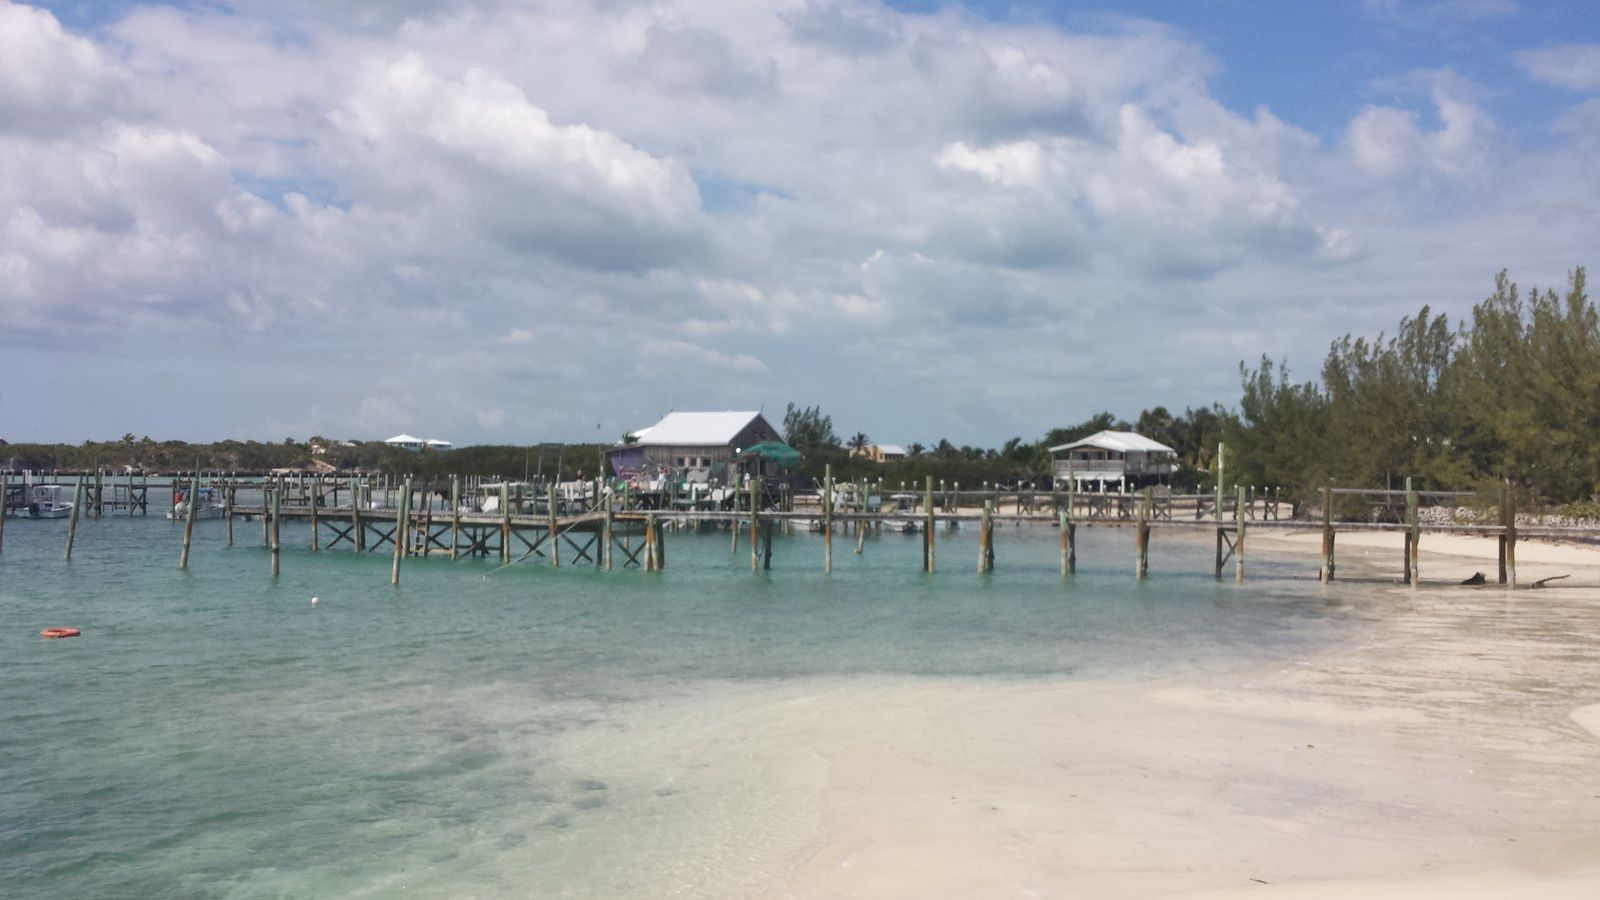 Ponton à little harbour sur Grand Abaco Island, style US